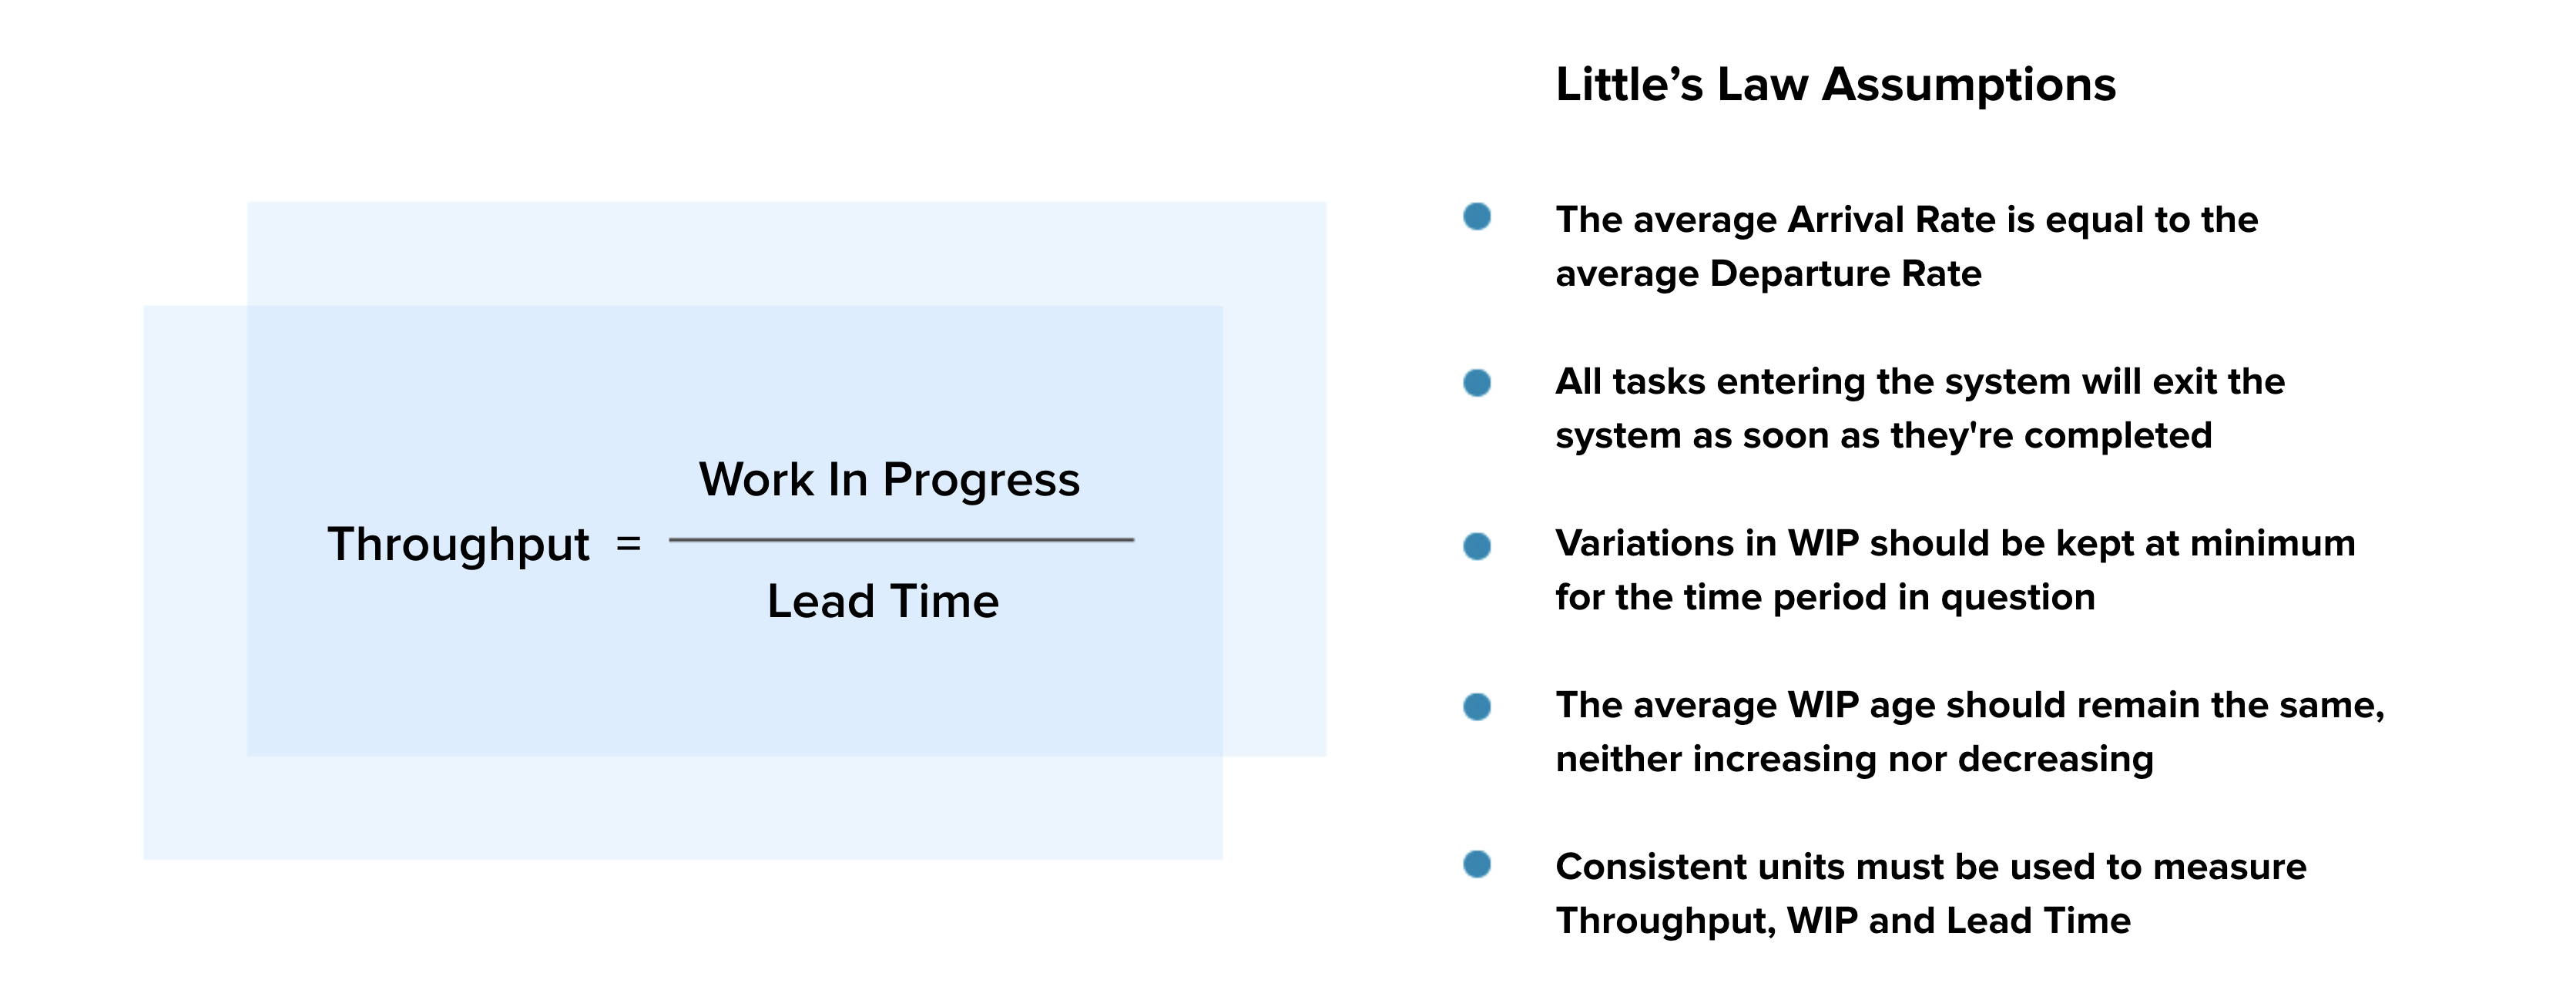 Little's Law assumptions in a kanban system